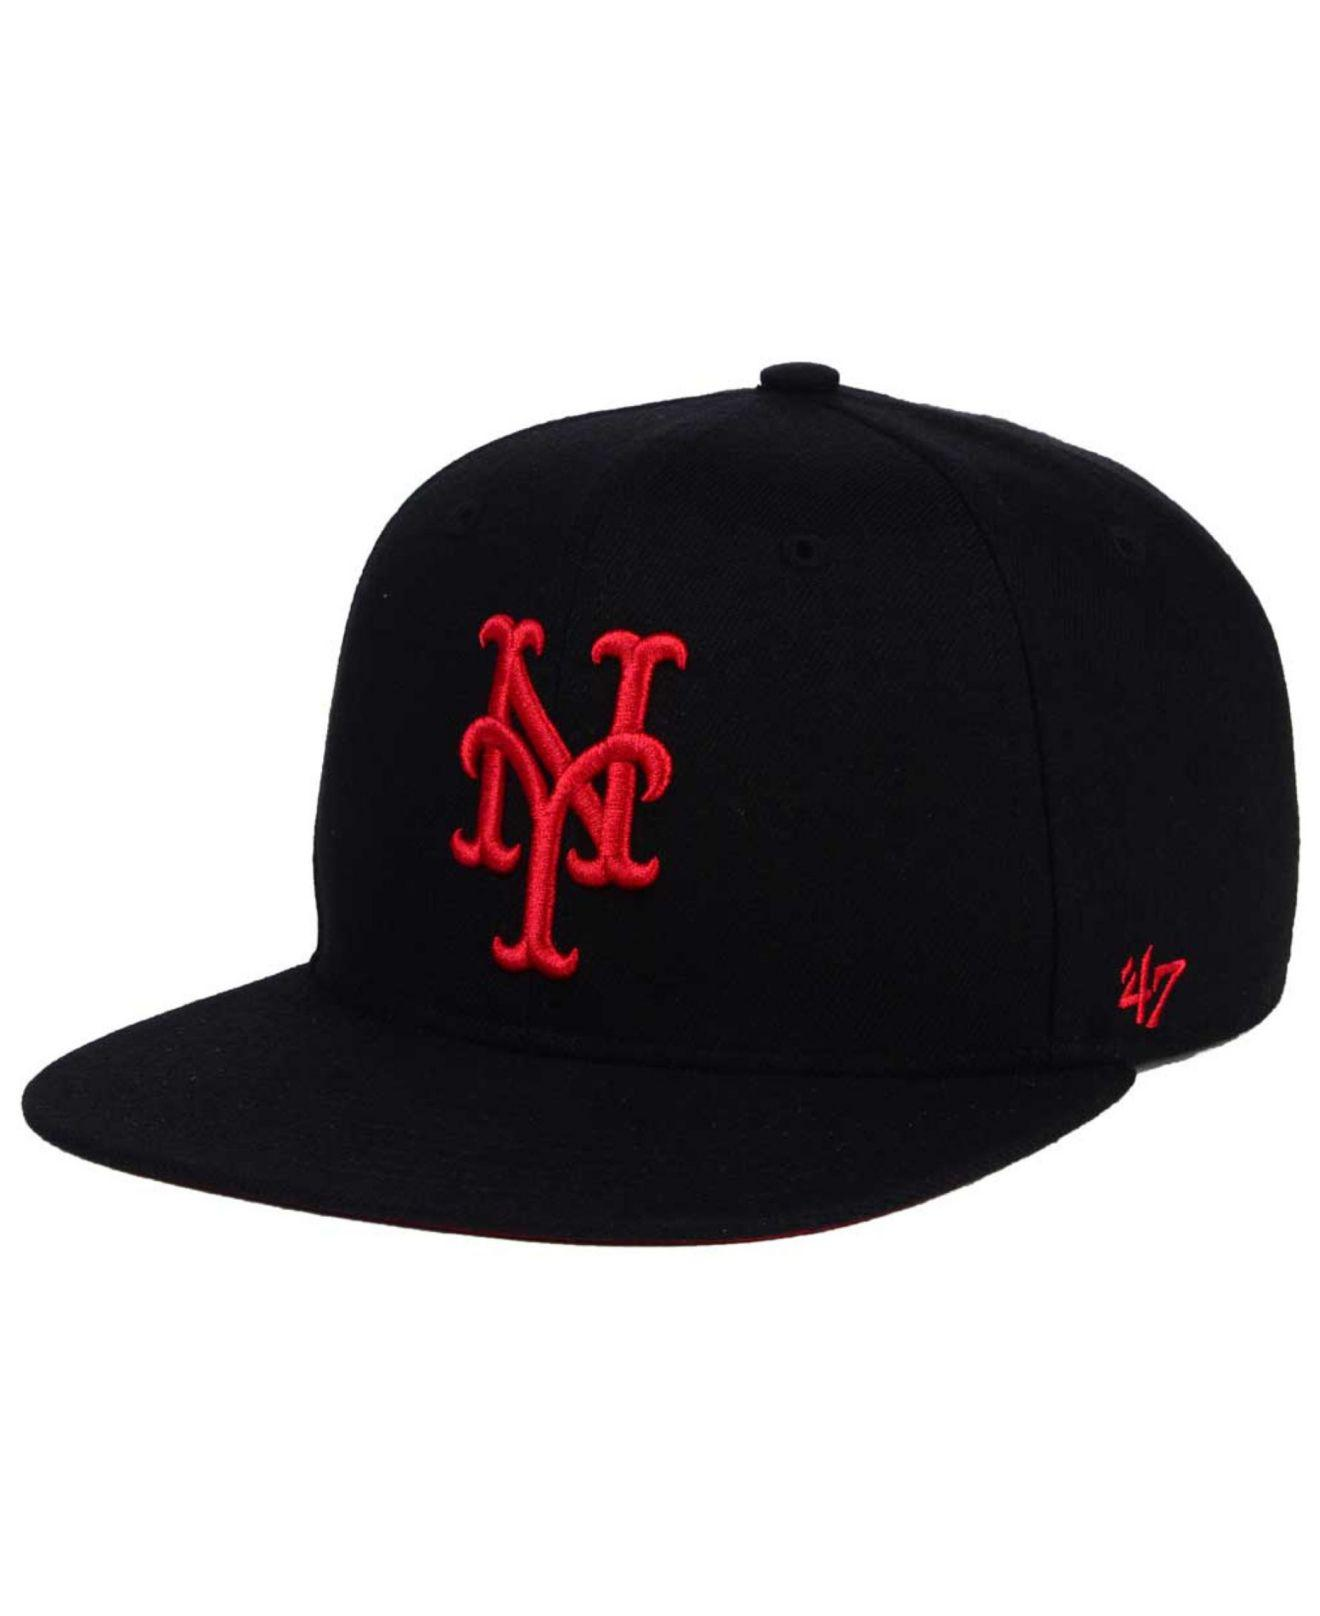 the best attitude 56e7e 295c0 ... where to buy 47 brand. mens new york mets black red shot snapback cap  8f5bf